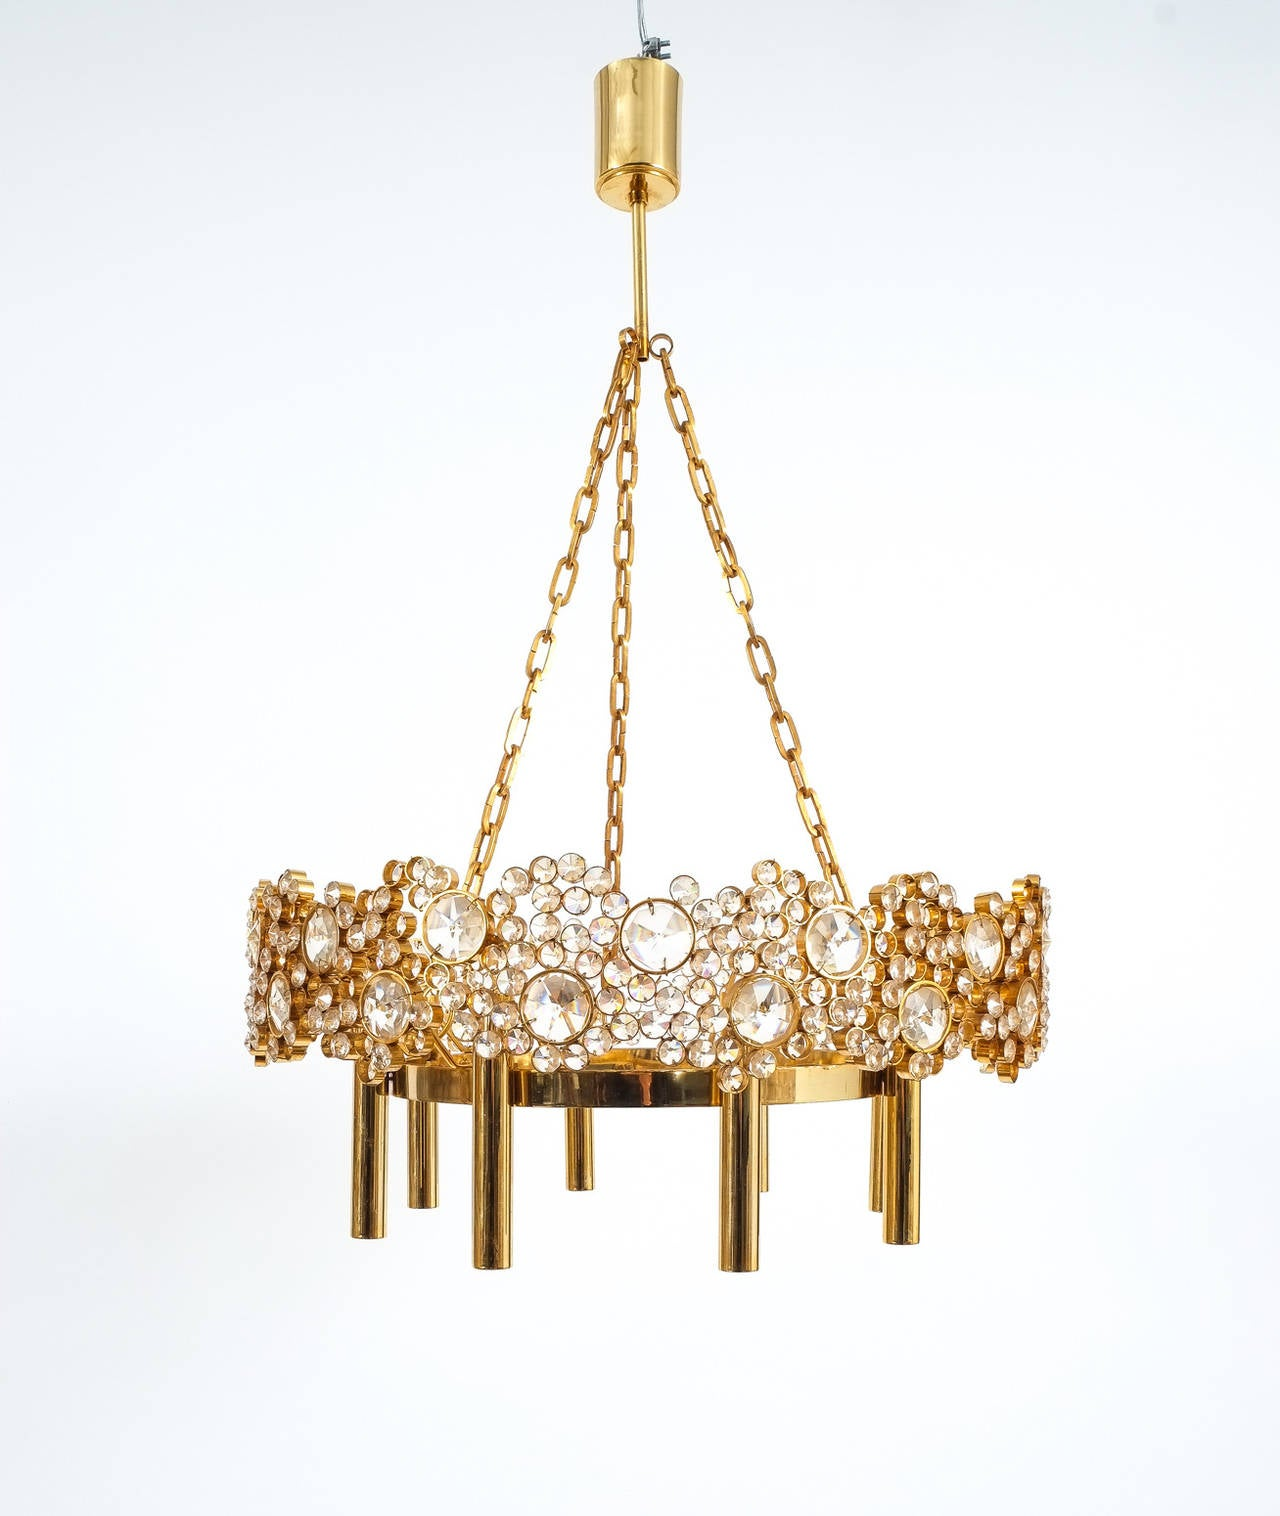 Large Gilt Brass and Glass Chandelier Lamp, Palwa circa 1960 For Sale 2